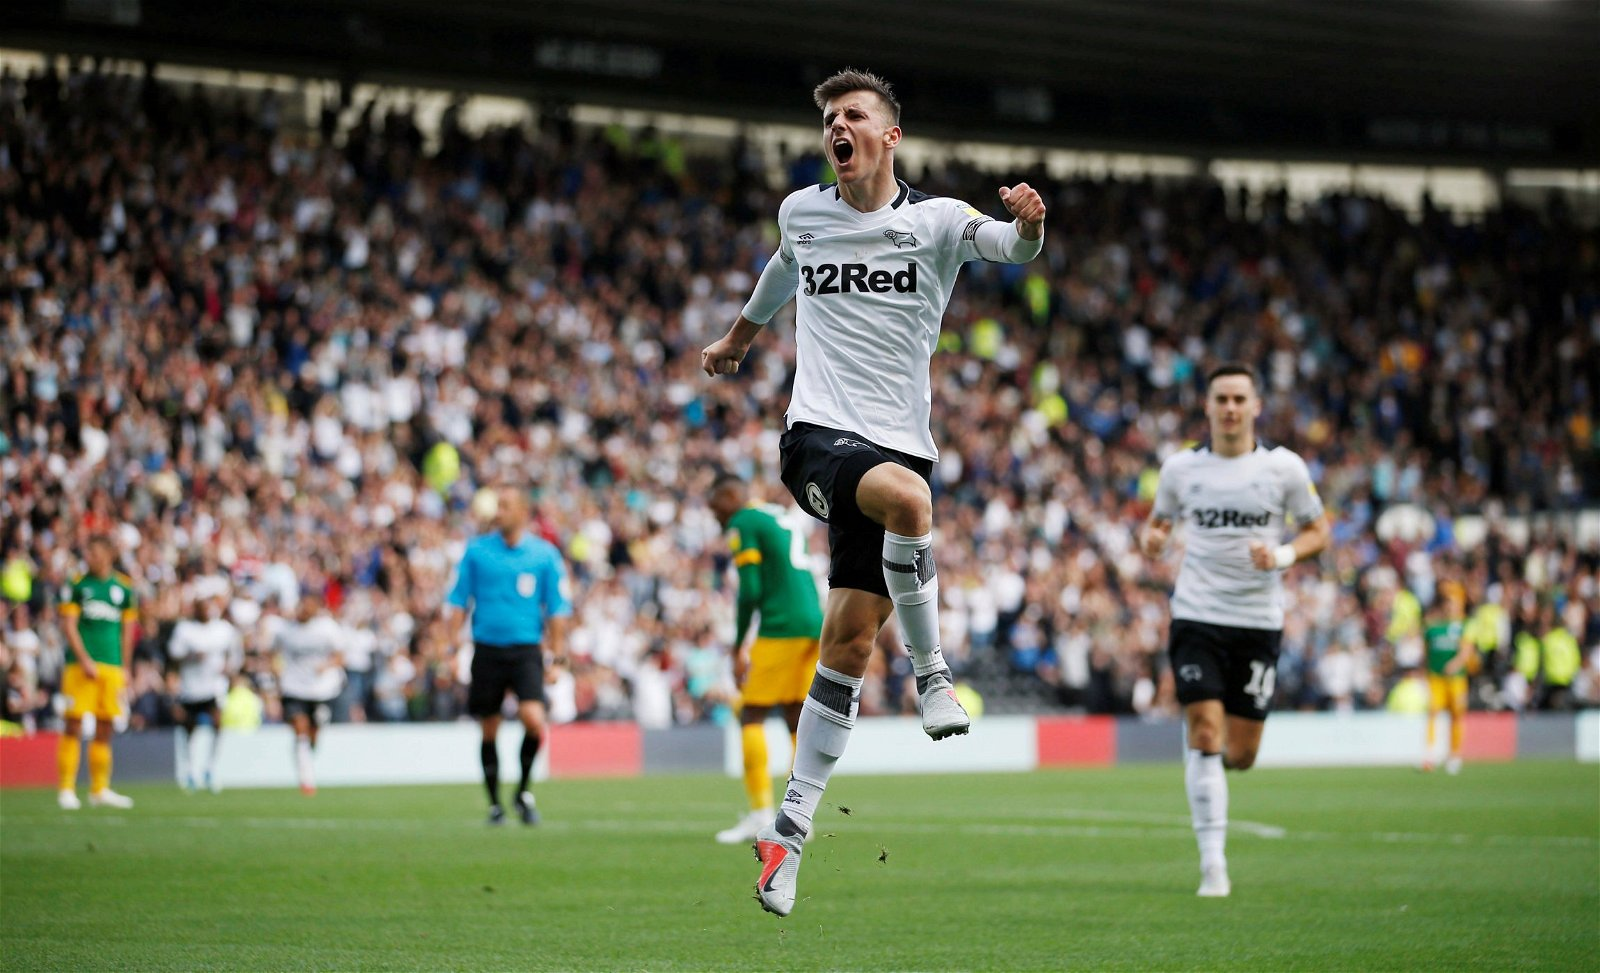 Derby County Mason Mount - 29-goal pairing, Grealish vs Tomori: Where Aston Villa vs Derby will be won and lost